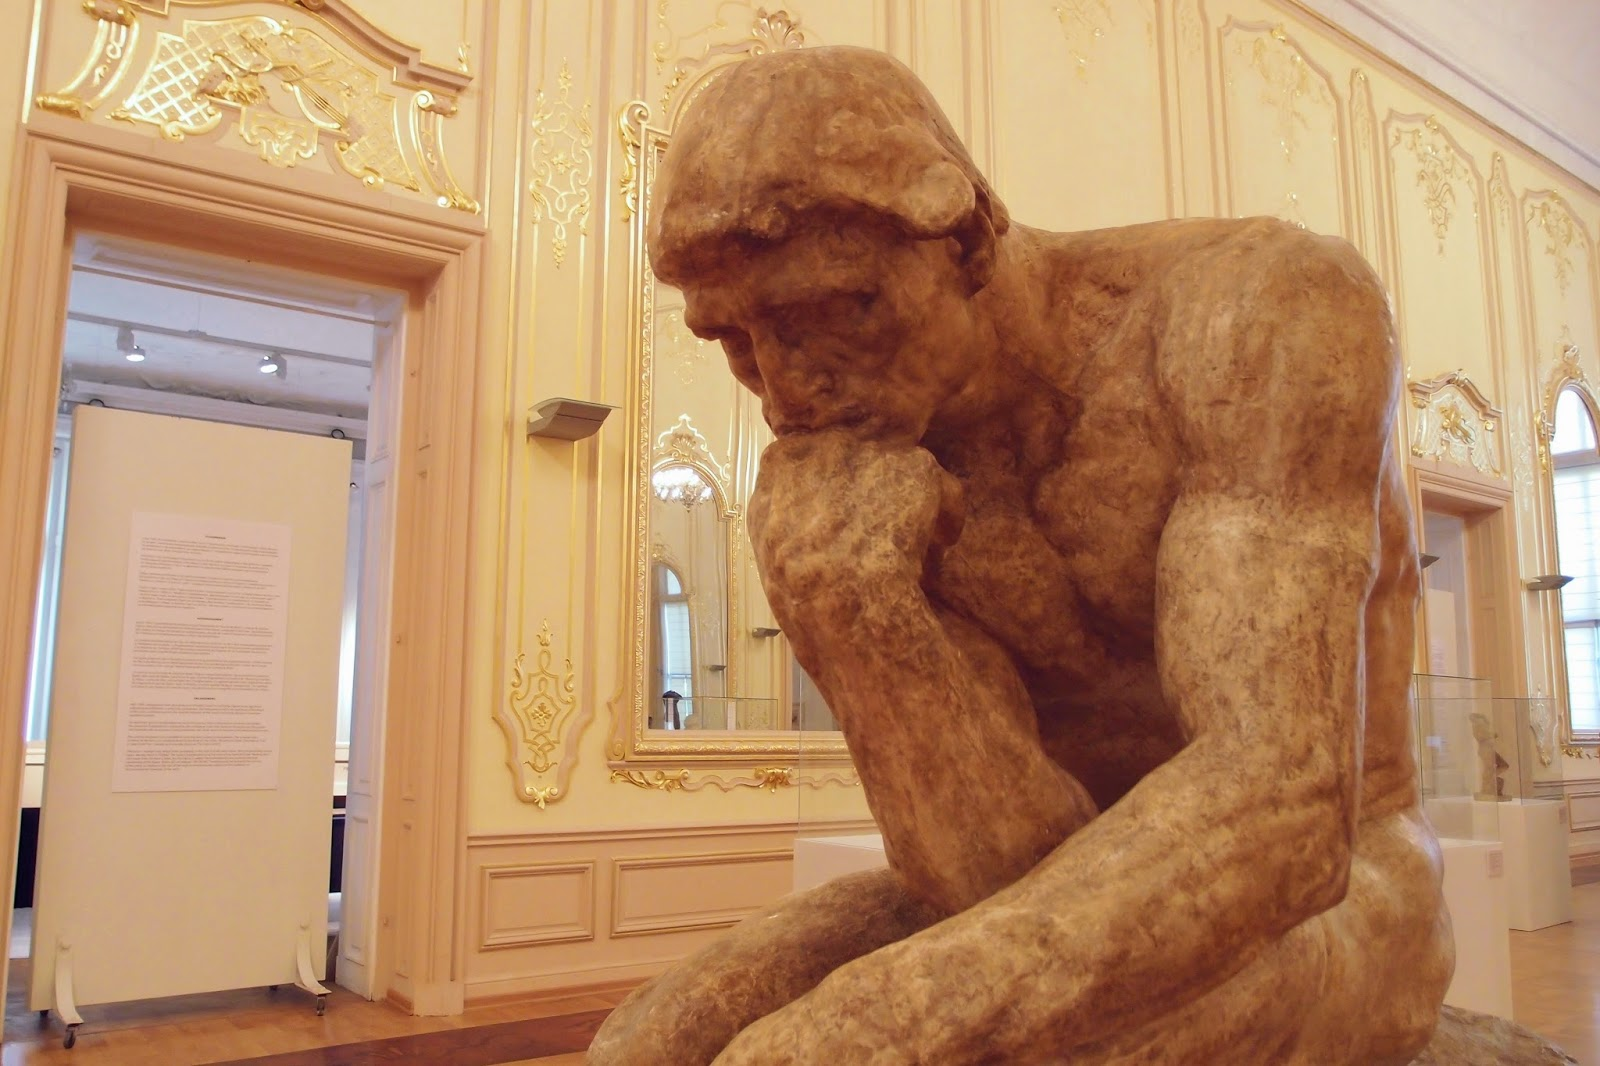 The Thinker - the center of Rodin's exhibition